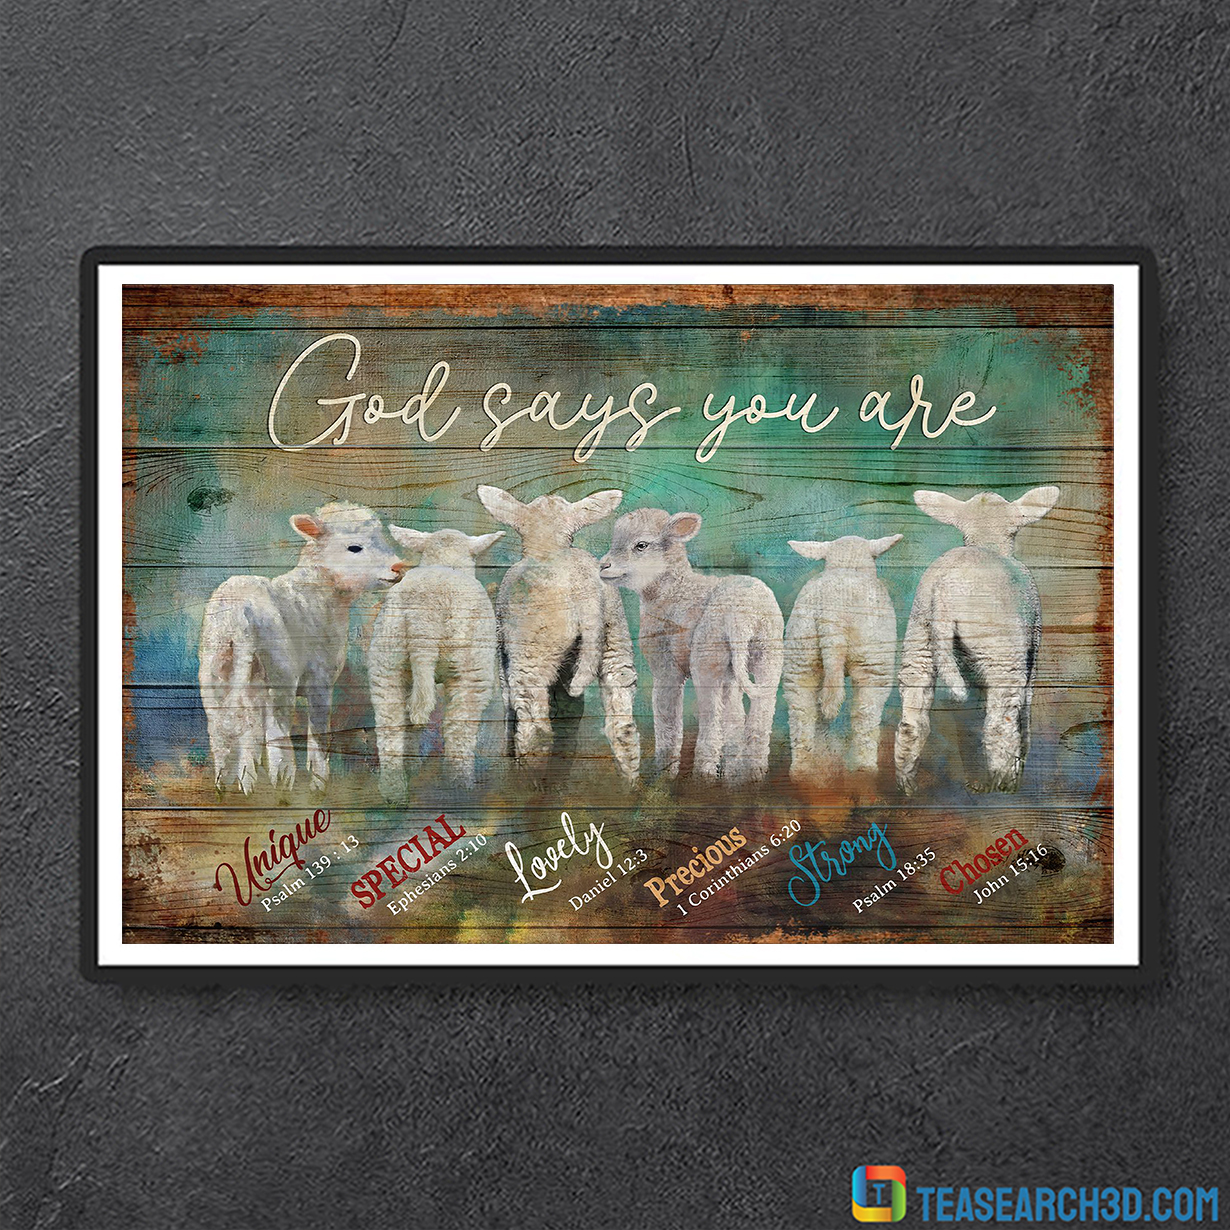 Lambs god says you are jesus canvas small